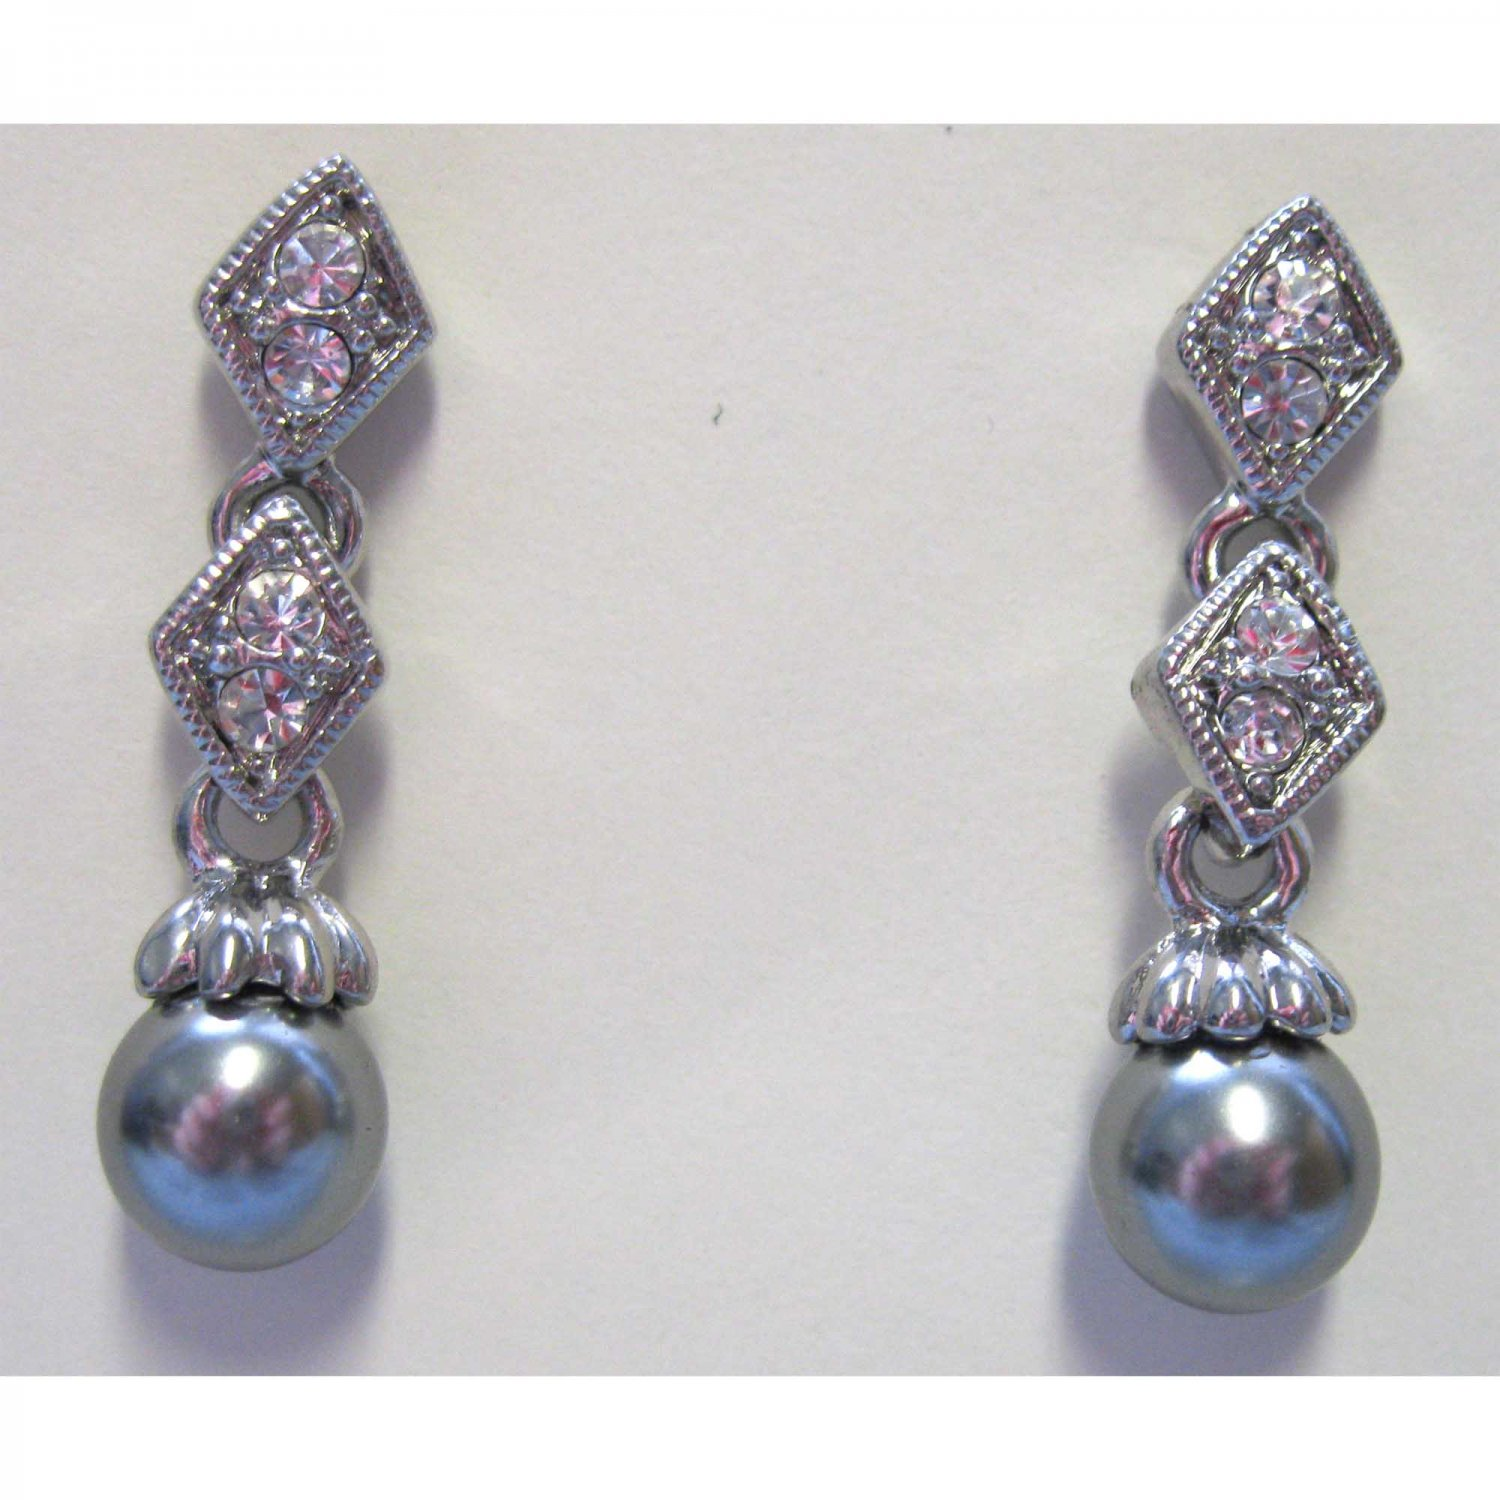 Silver earrings with crystals fashion drop jewelry